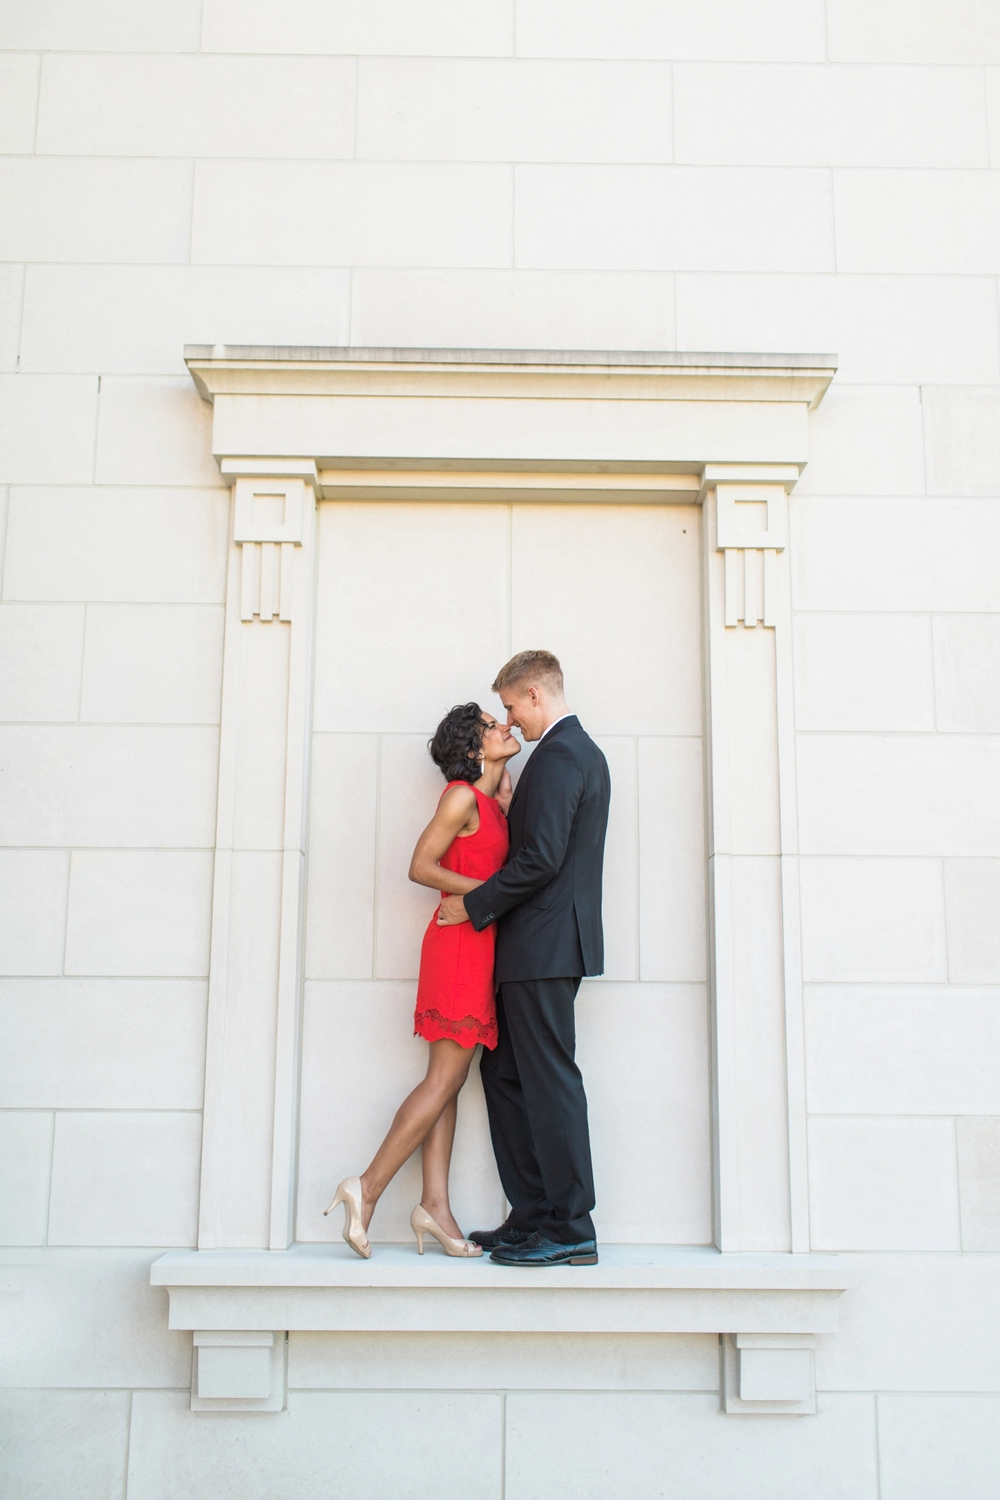 The_Palladium_Carmel_Indiana_Engagement_Photos_Chloe_Luka_Photography_7264.jpg